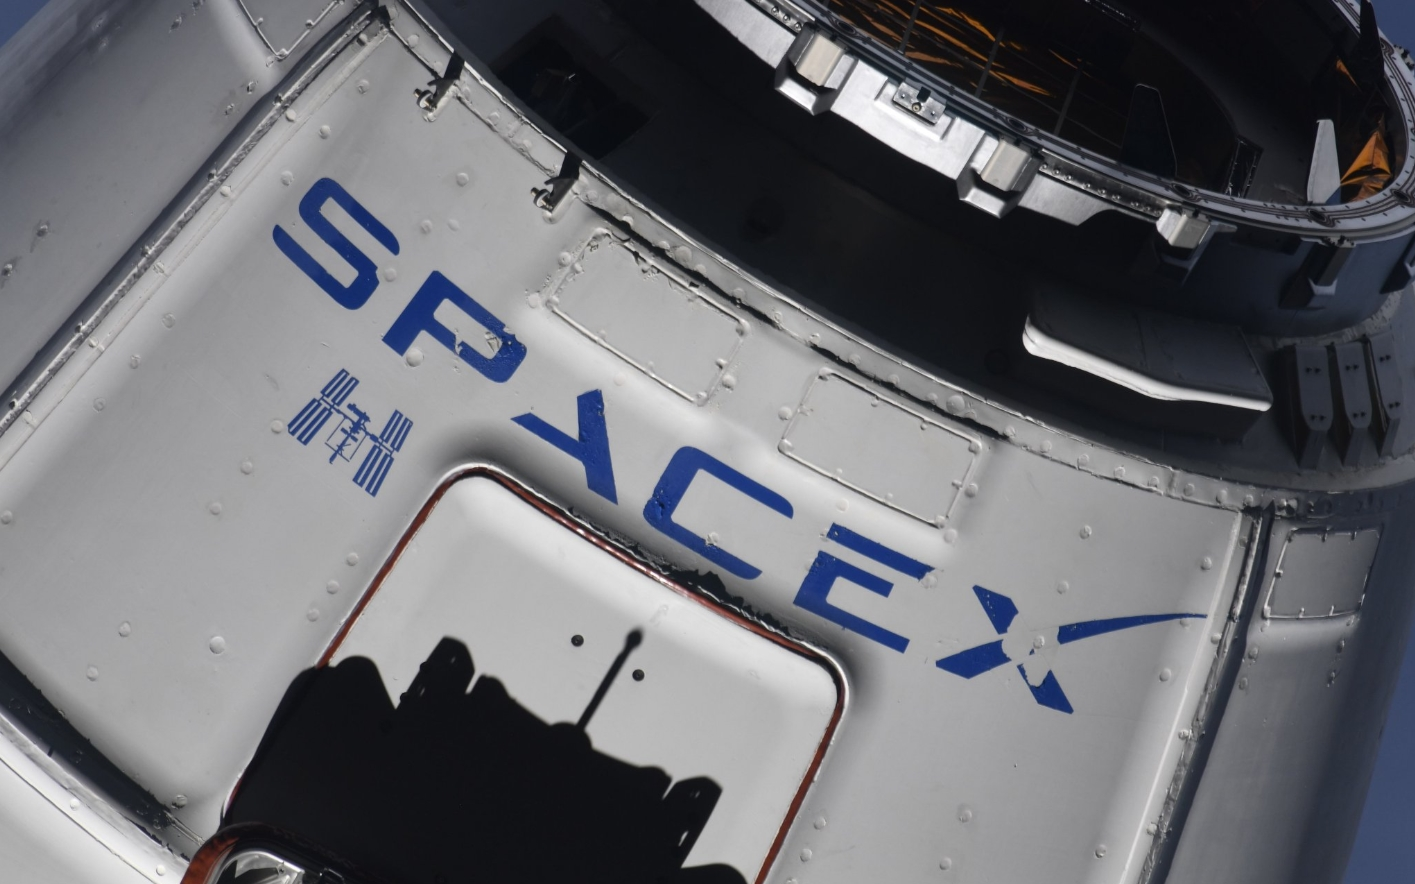 SpaceX Will Fly Astronauts Before Boeing